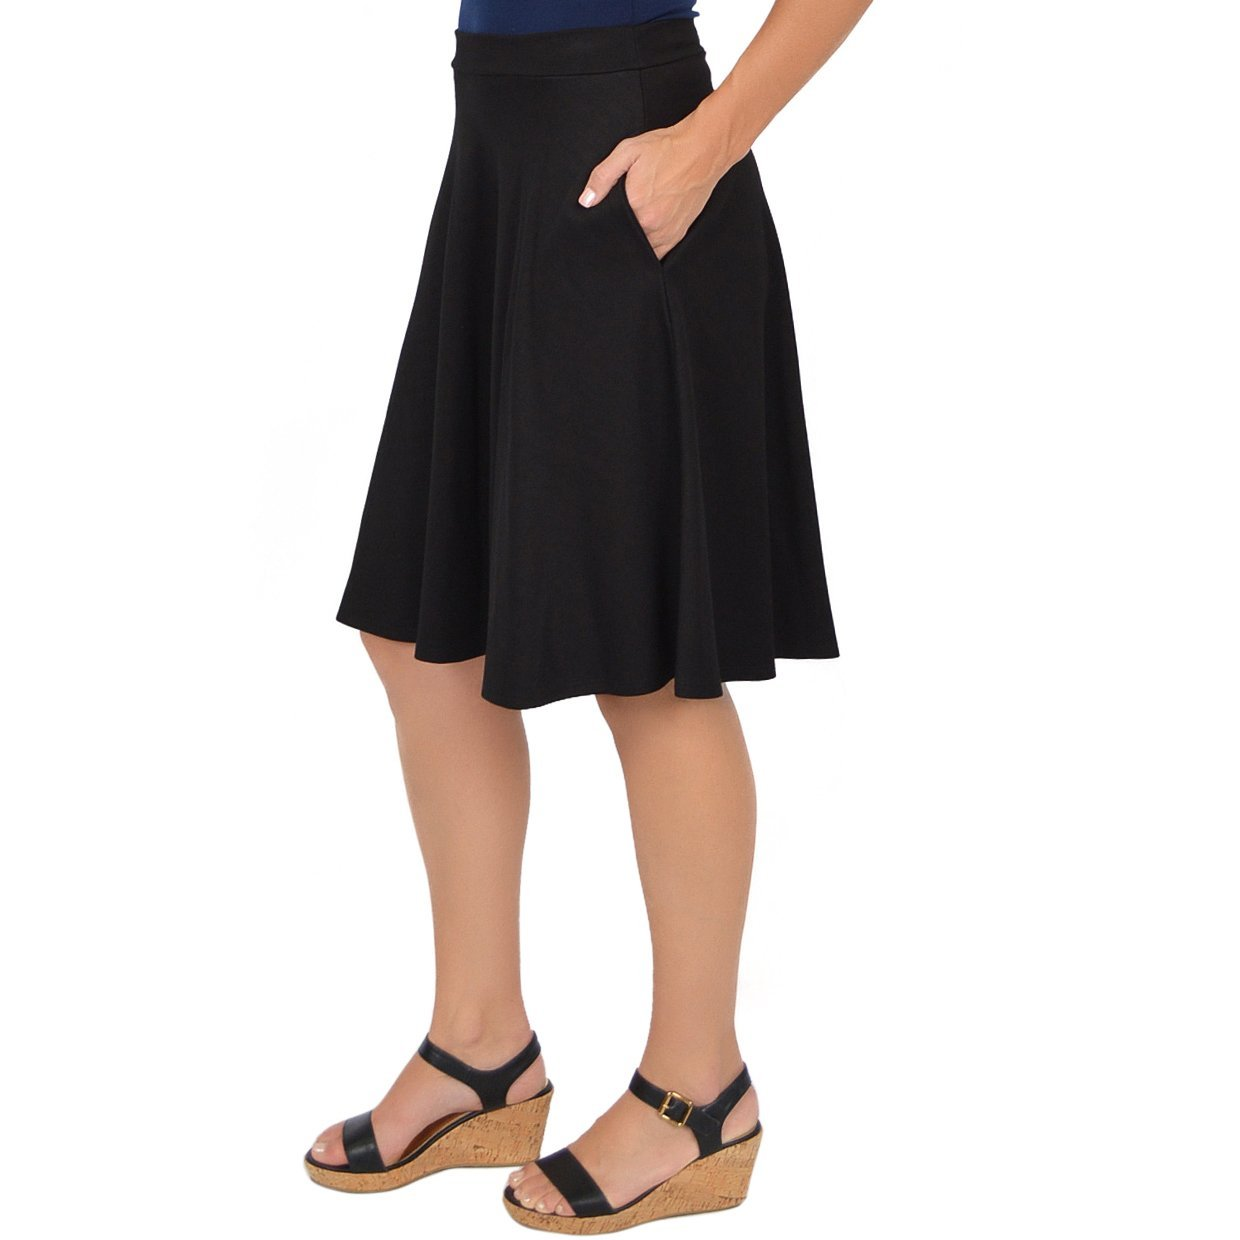 Stretch is Comfort SKIRT レディース B076C5K6Z4 X-Large|ブラック ブラック X-Large